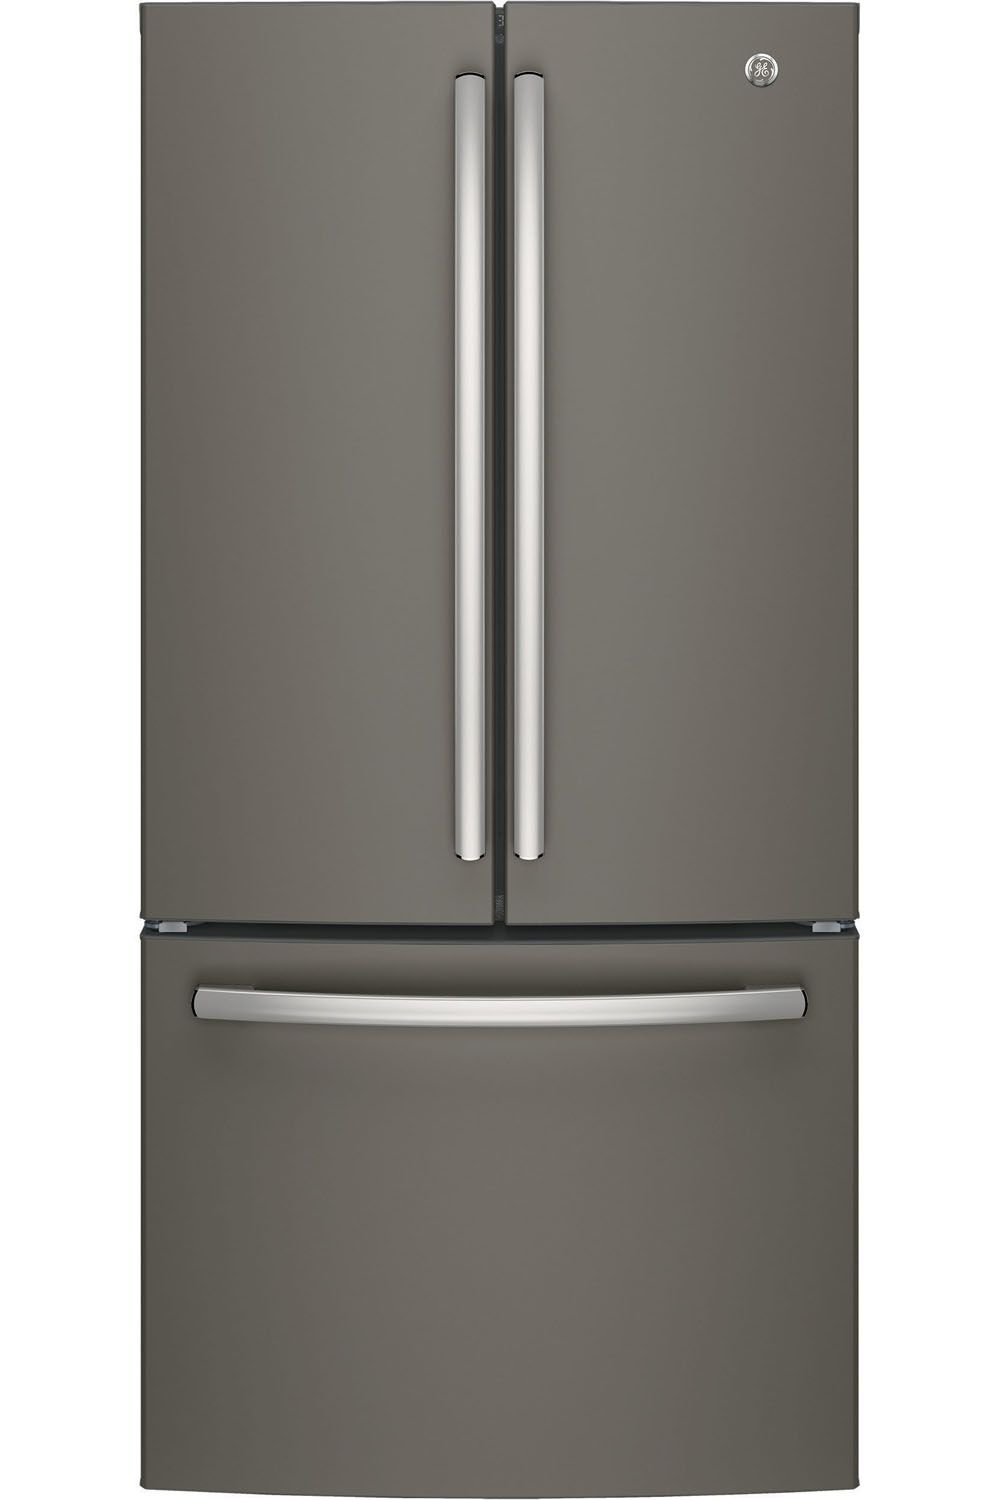 GE - GNE25JMKES - French Door Refrigerators